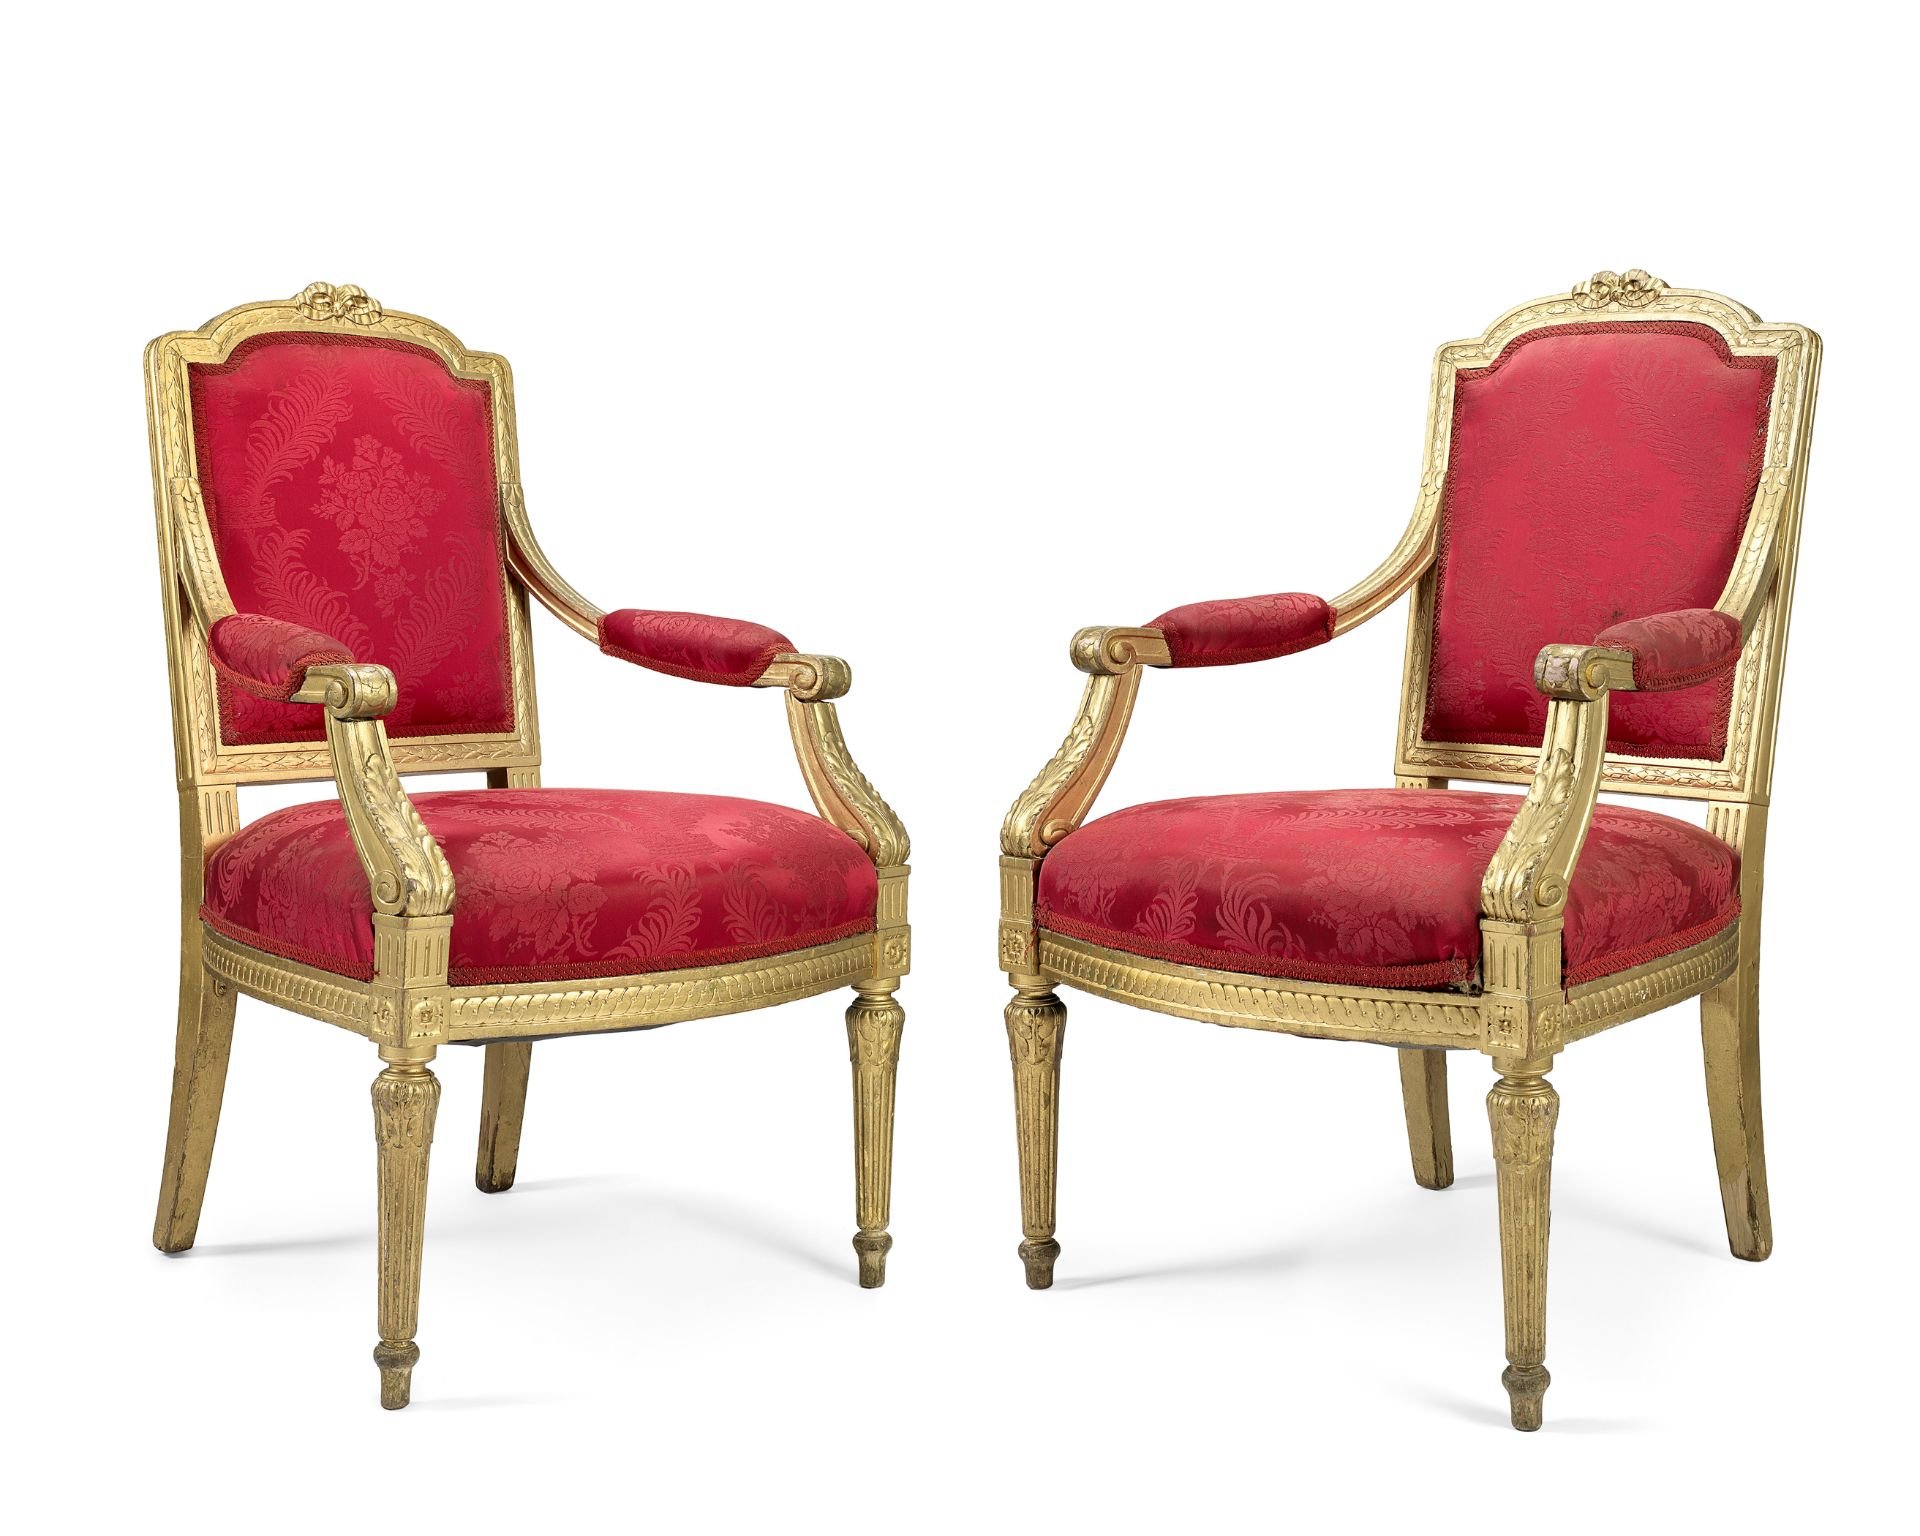 Theatre Royal: a pair of early 20th century giltwood open armchairs in the Louis XVI style, 2